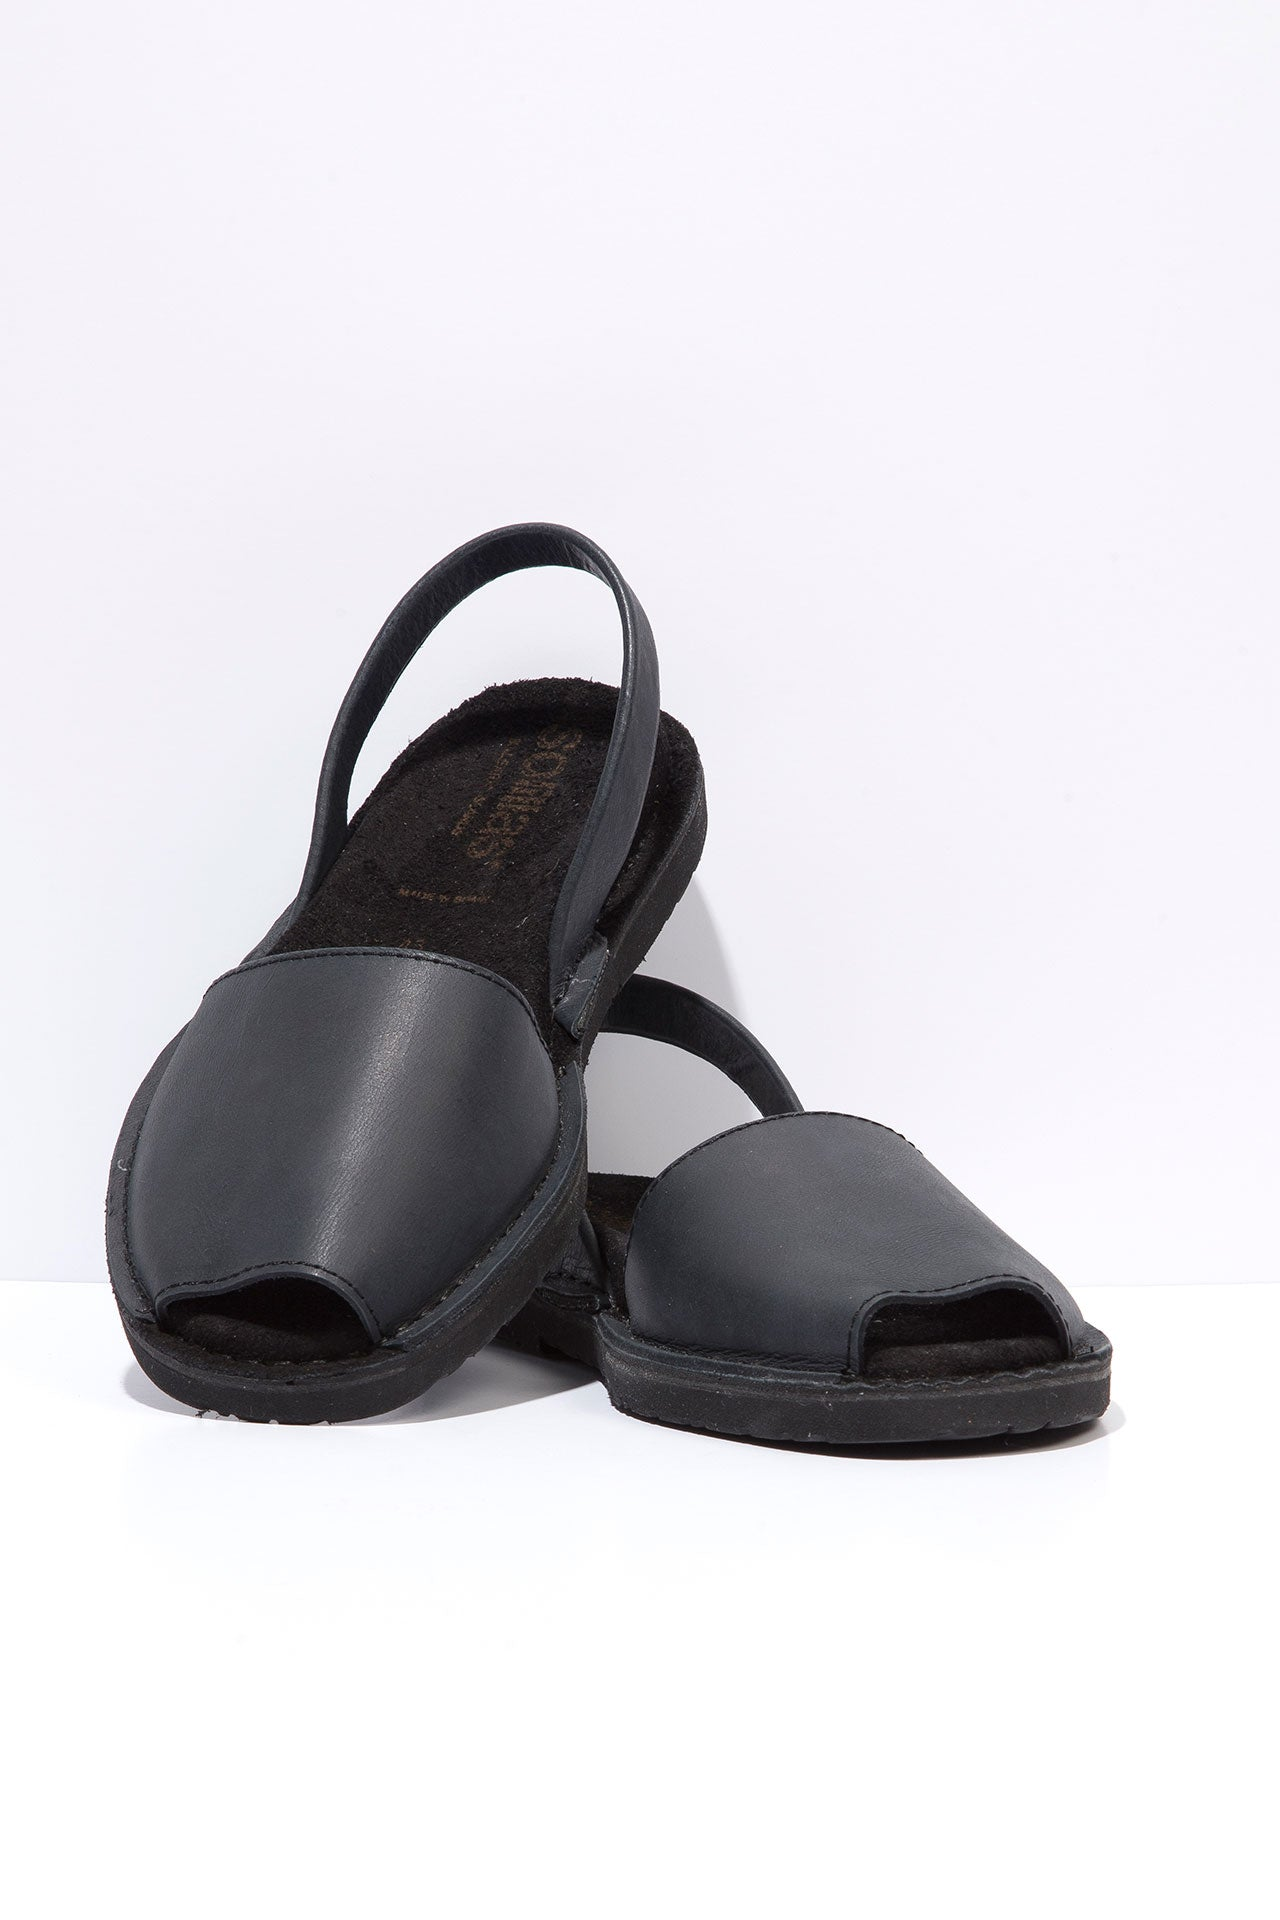 Noche Suave - Contoured Sole Men's Sandals